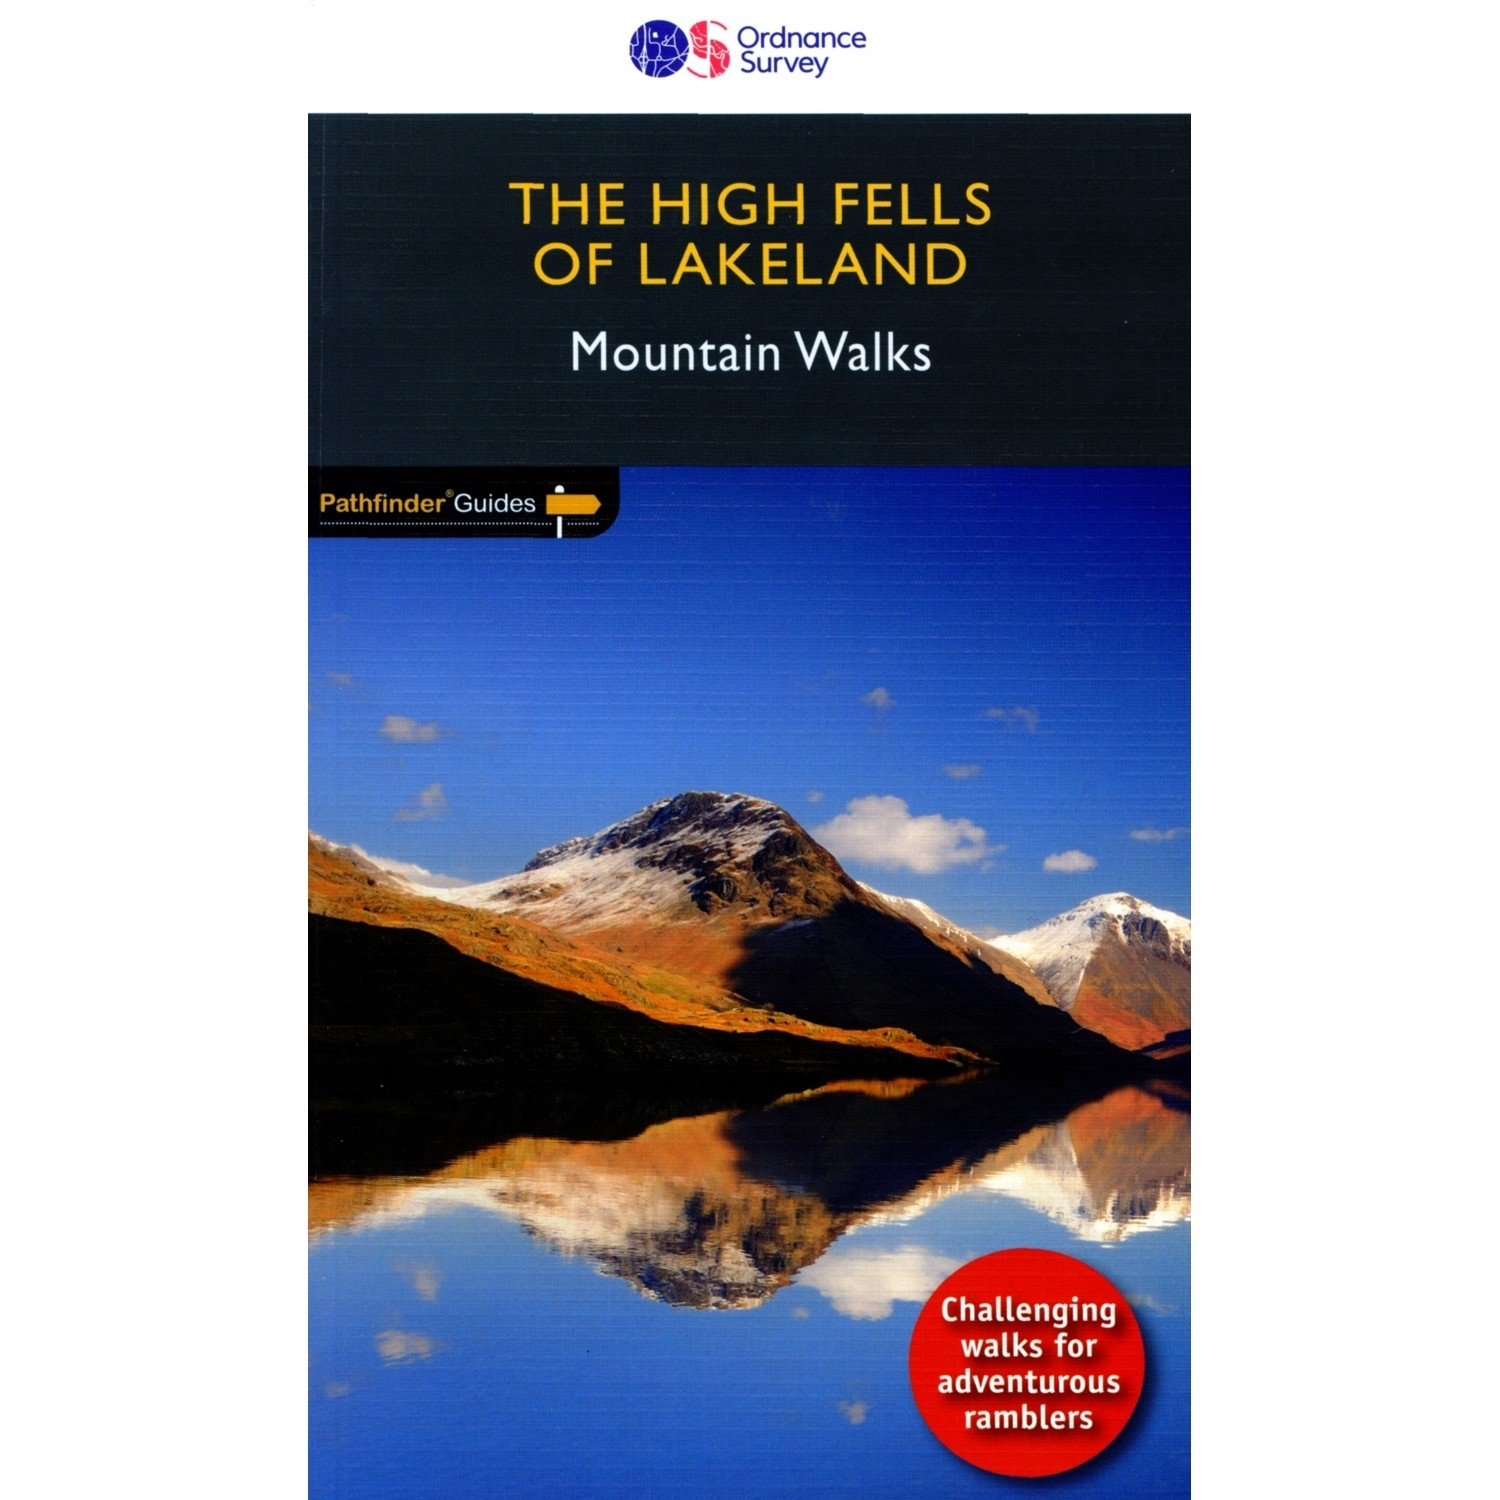 The High Fells of Lakeland: Pathfinder Guide